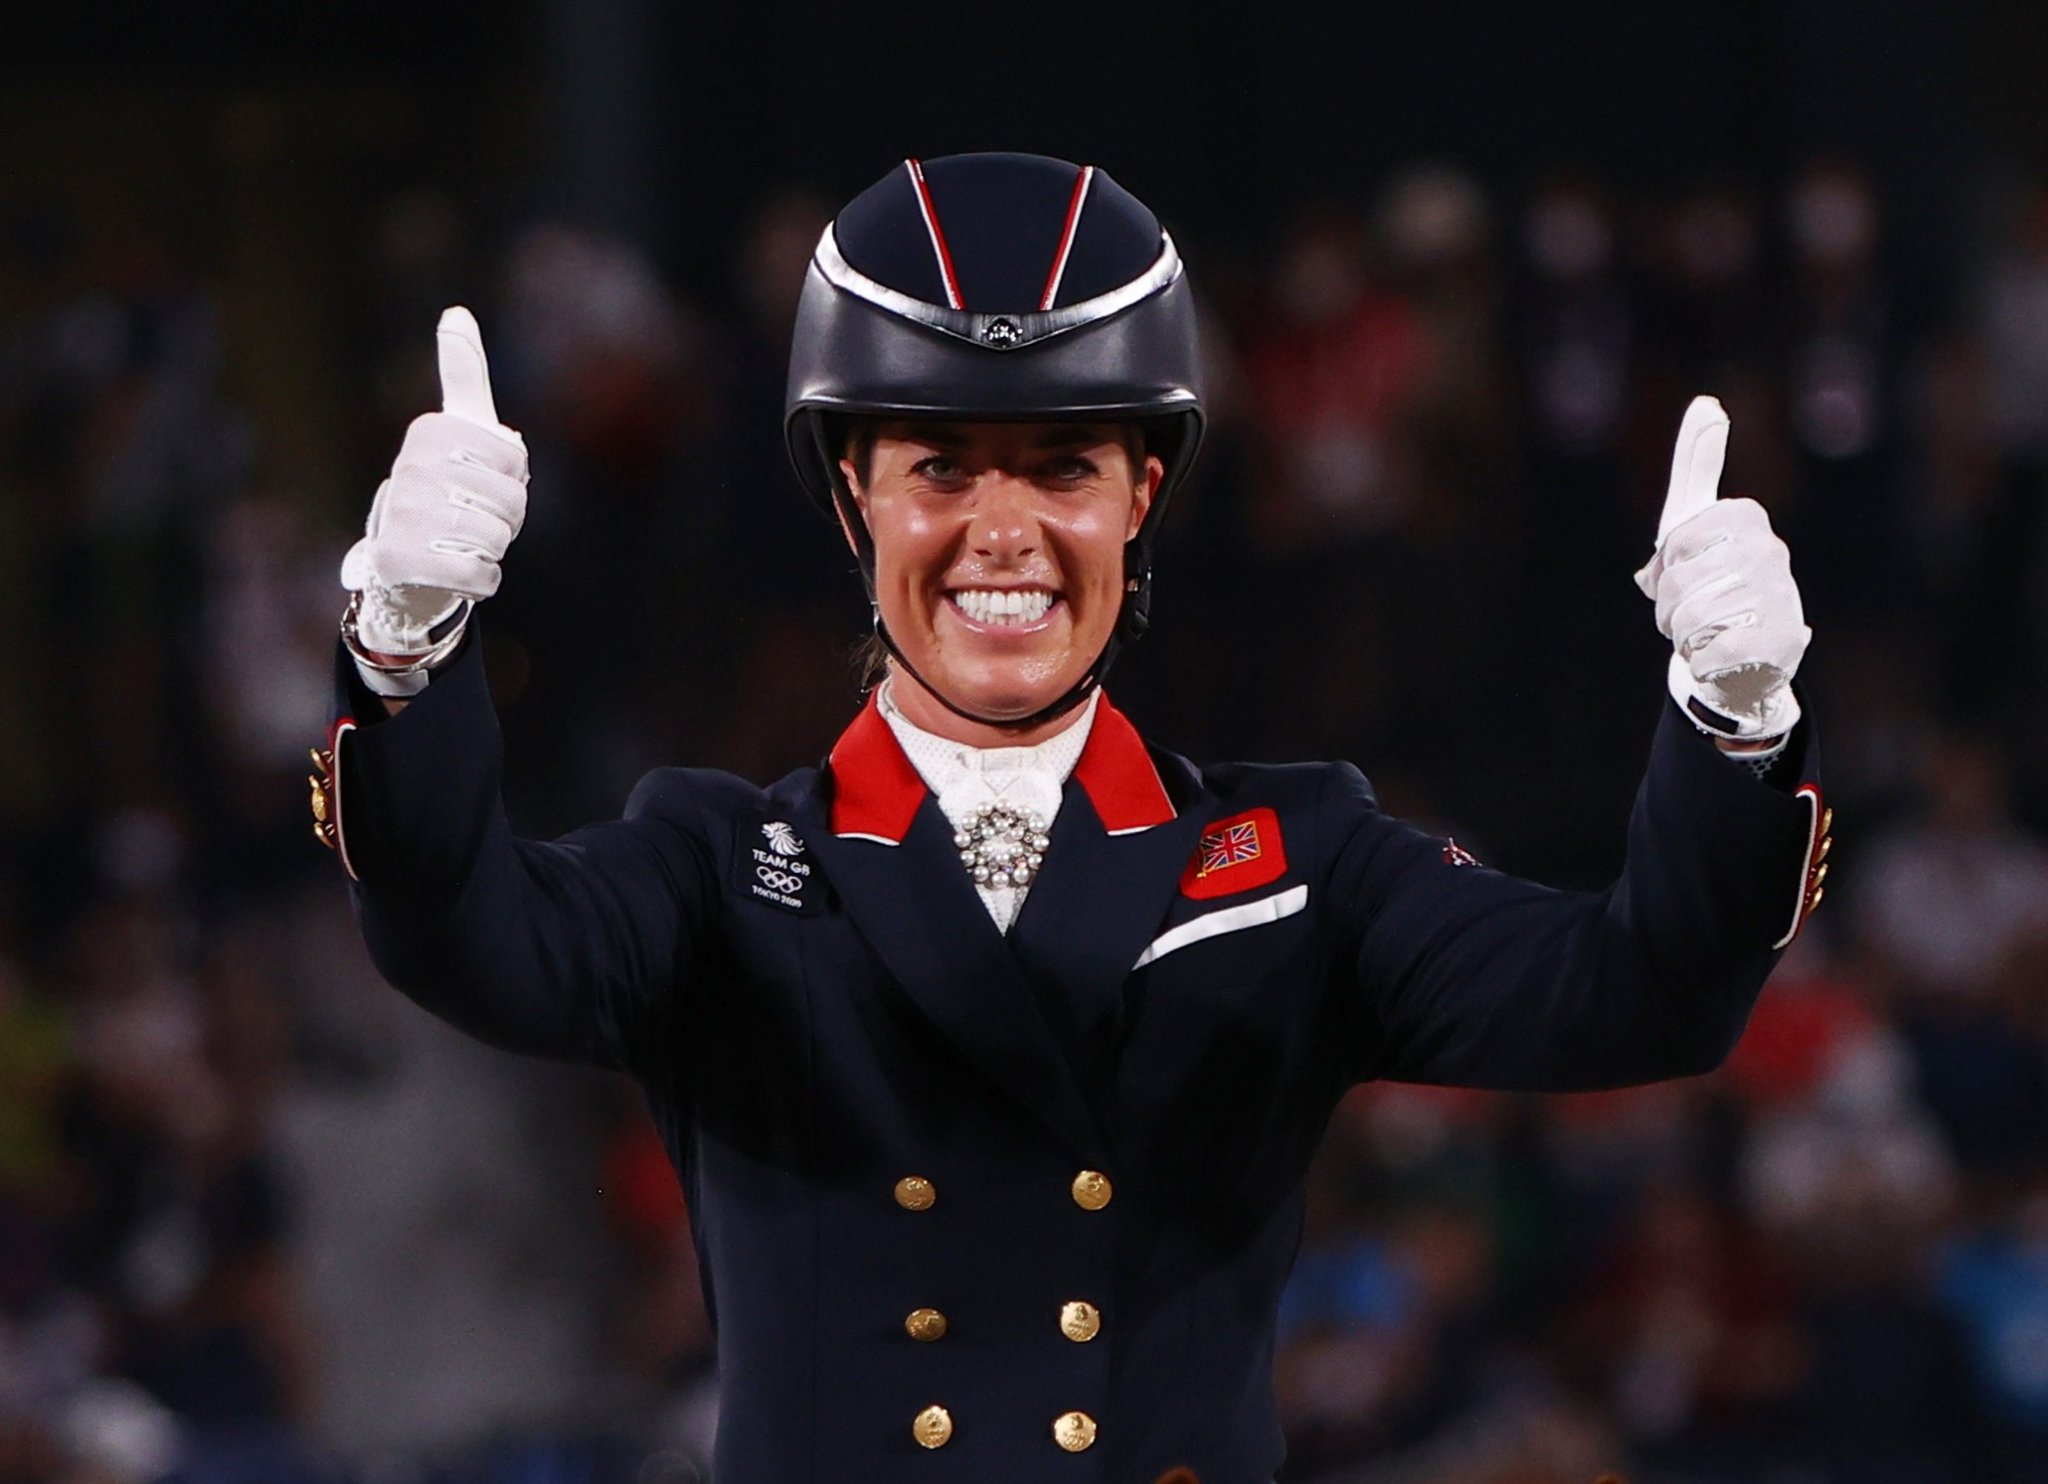 Charlotte Dujardin wins bronze in dressage to become Team GB's most decorated female Olympian